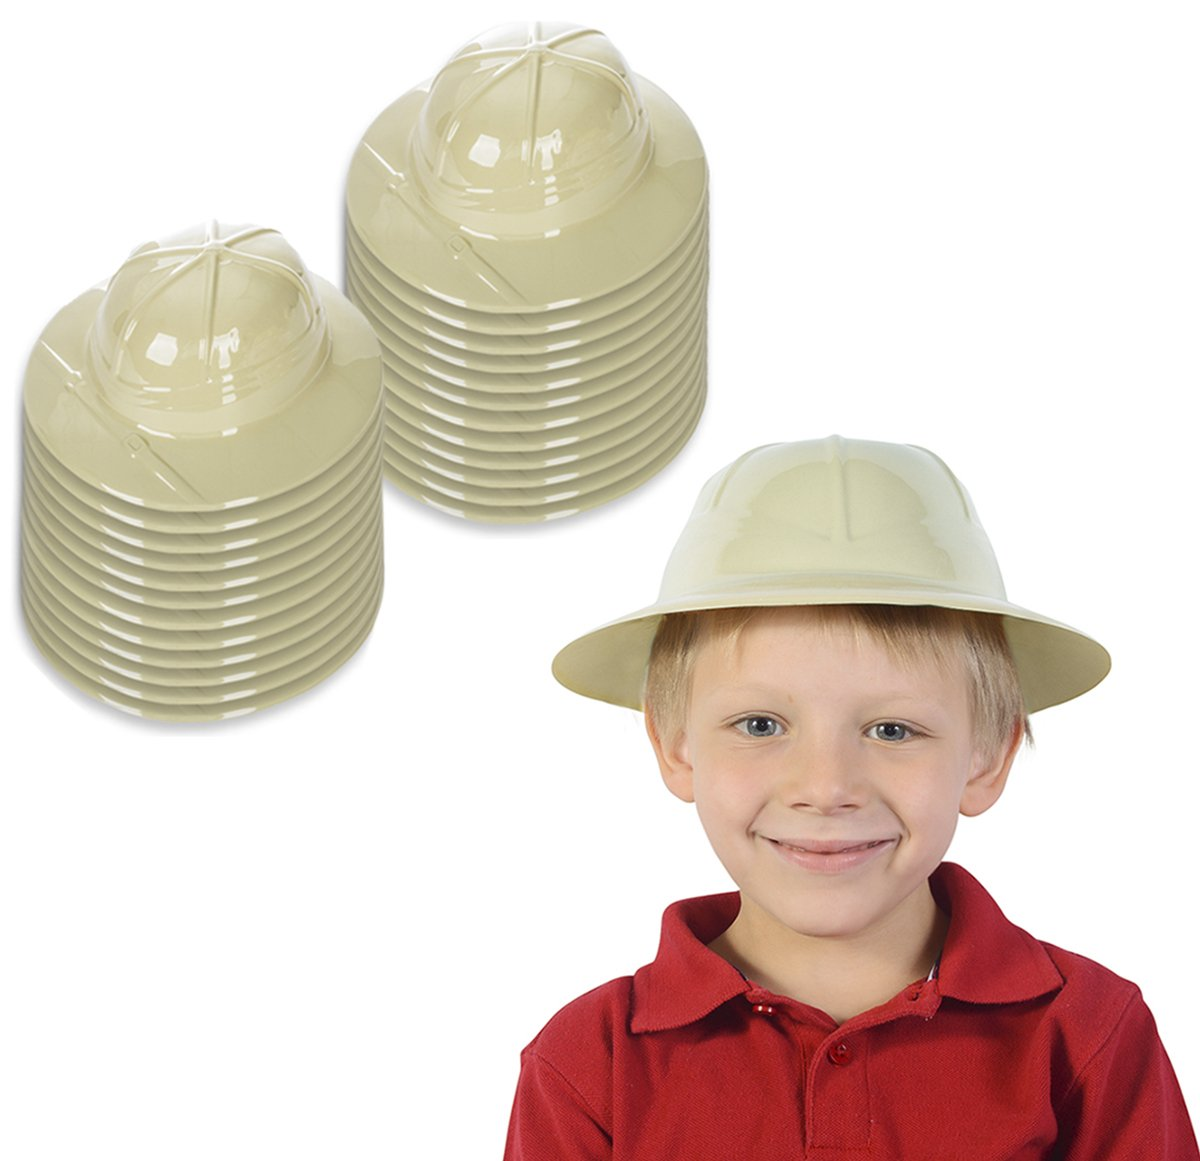 395fd3ef615 Amazon.com  Funny Party Hats Safari Hat Party Favor - Jungle Party Supplies  - Pith Helmets for Kids - Safari Party Supplies (24 Pack)  Toys   Games